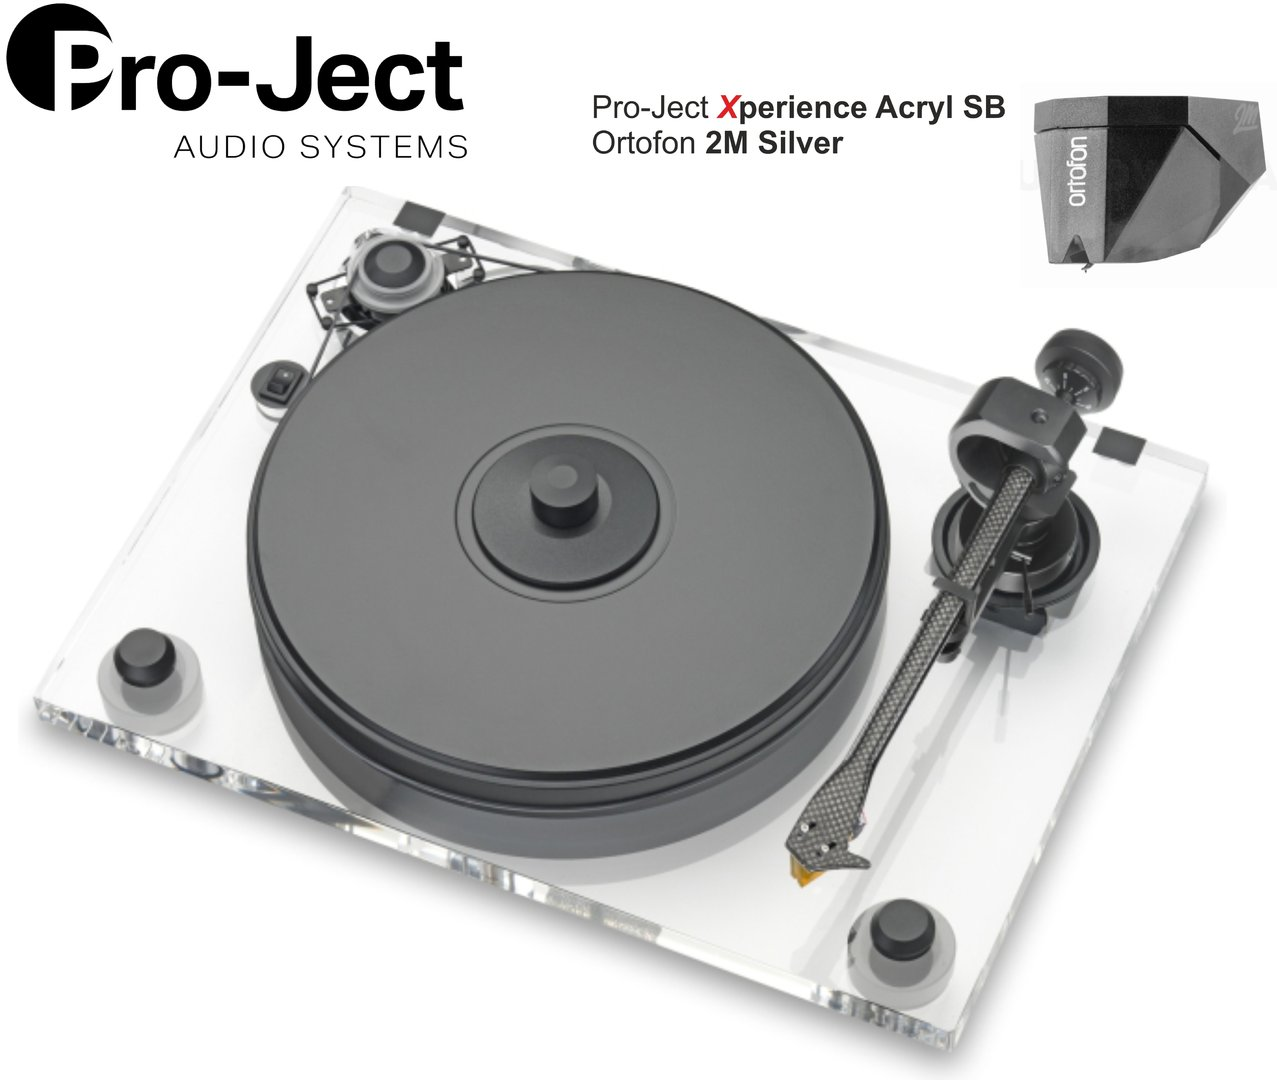 Pro-Ject Xperience ACRYL SB Turntable with Ortofon 2M Silver